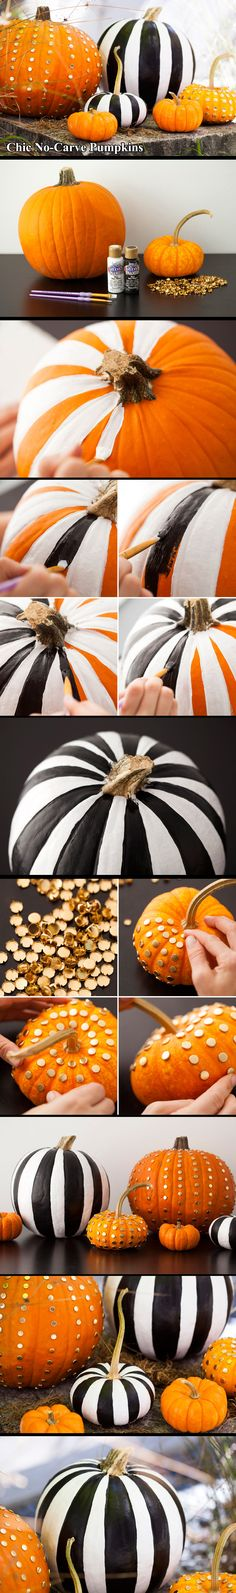 2 Ways to Make Chic No-Carve Pumpkins via Brit + Co. Halloween with Tim Burton ~~ Halloween Party Decorations & IdeasDIY: 2 Ways to Make Chic No-Carve Pumpkins via Brit + Co. Halloween with Tim Burton ~~ Halloween Party Decorations & Ideas Halloween Hacks, Fröhliches Halloween, Diy Halloween Decorations, Holidays Halloween, Halloween Pumpkins, Halloween Decorating Ideas, Chic Halloween Decor, Halloween Parties, Fall Decorations